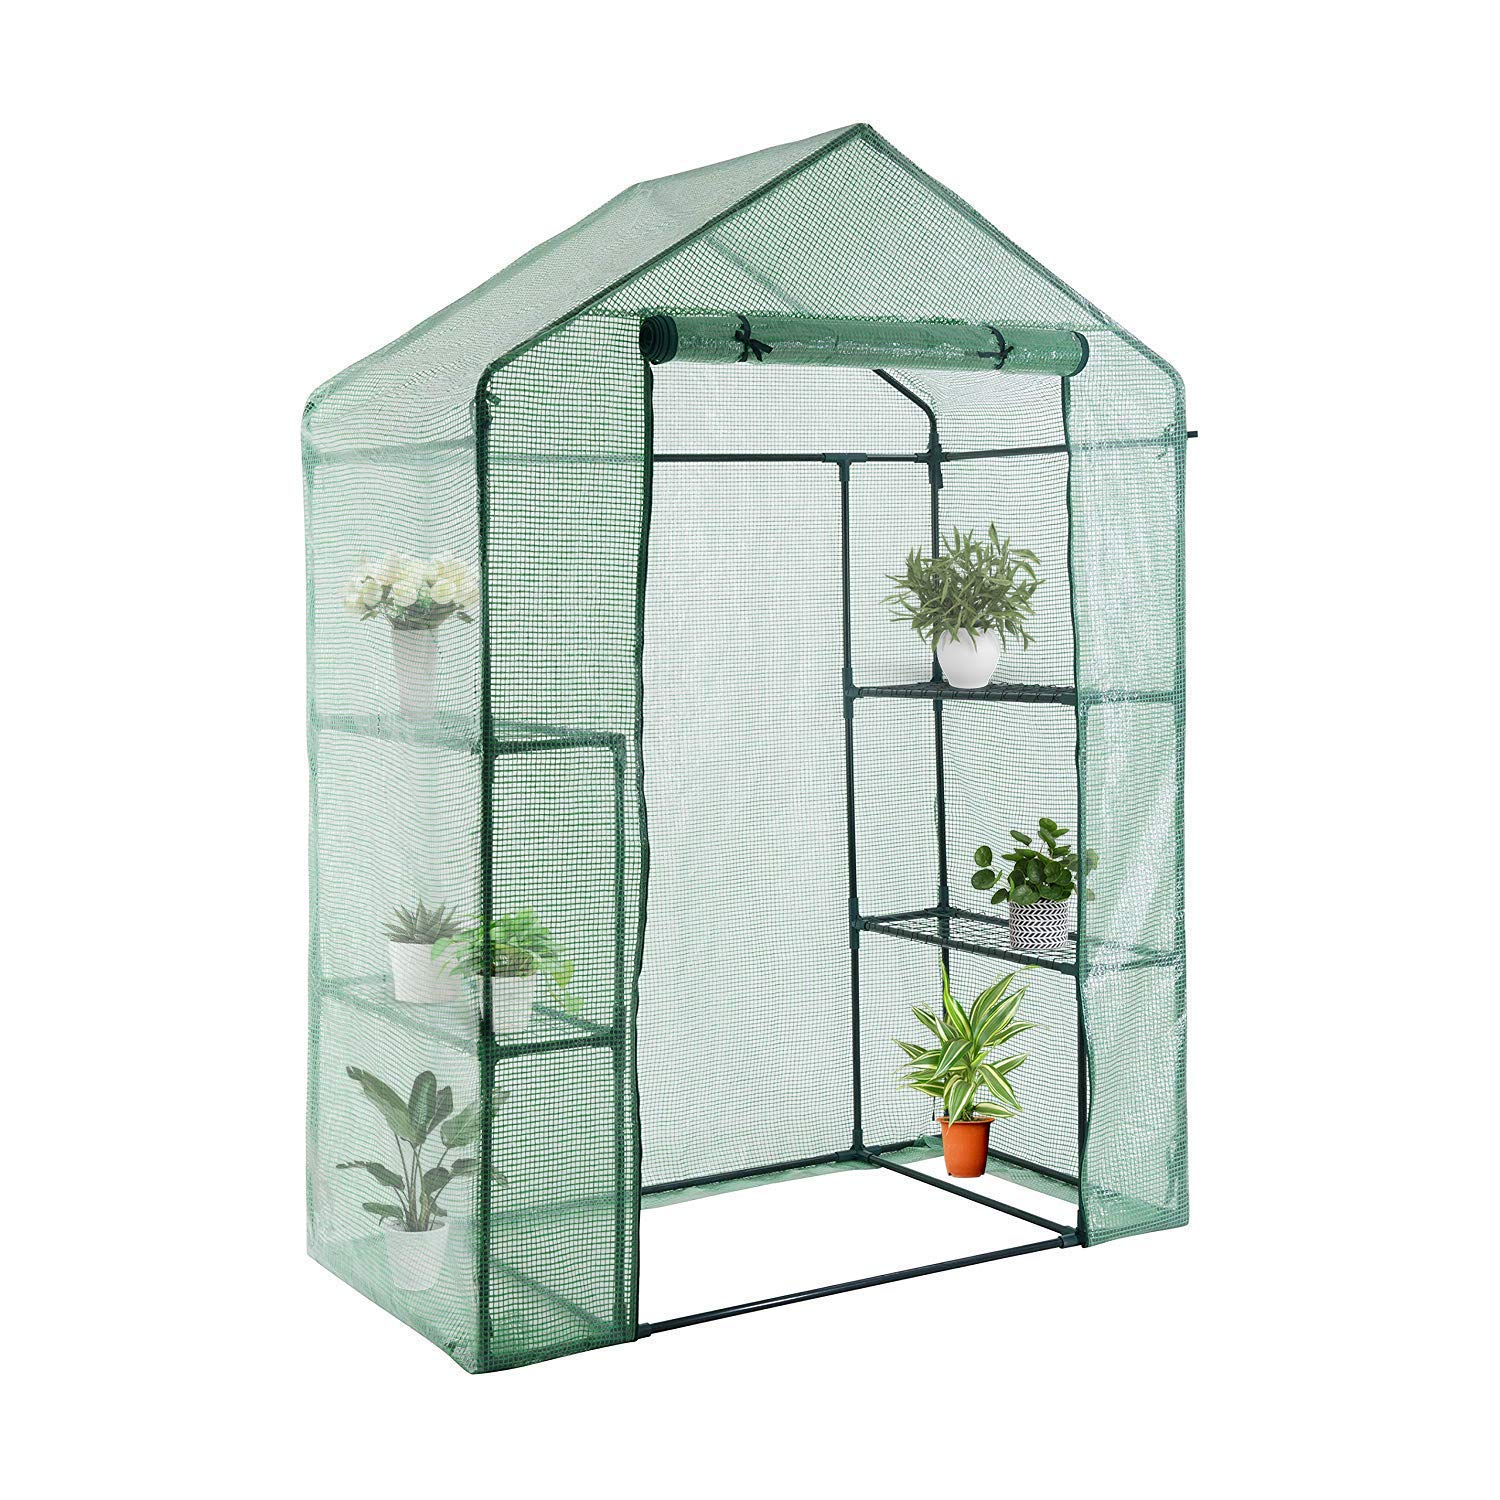 YOUKE Walk-in Greenhouse PE Cloth Cover Garden House Succulent Plants Flowers Green Plant Insulation Family (56''x28''x77'') by YOUKE (Image #1)